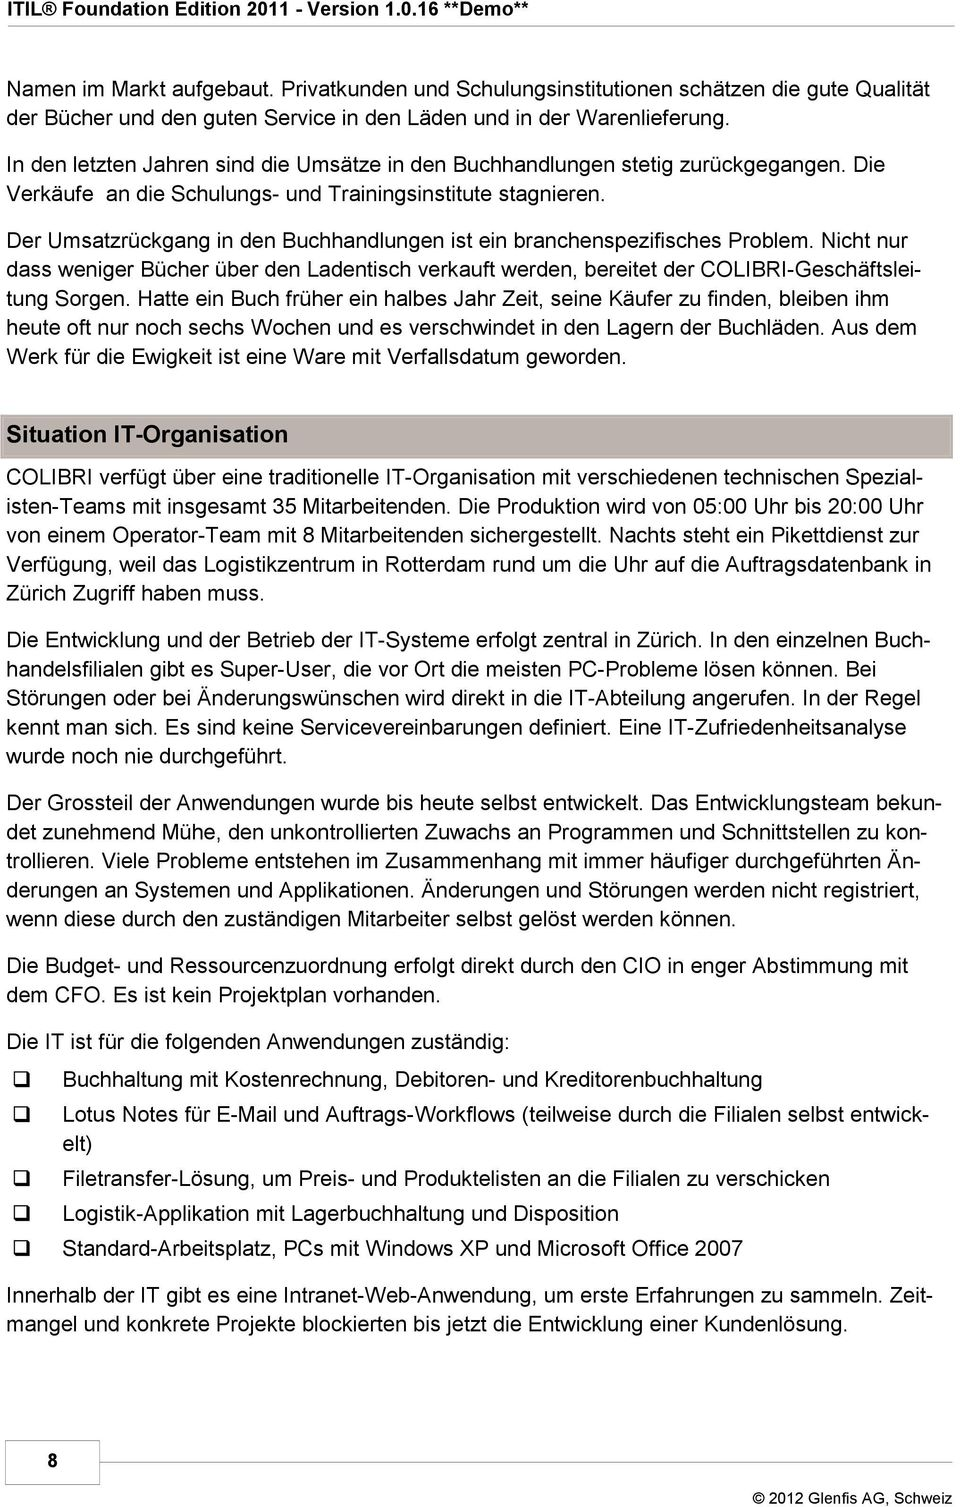 Charmant Lotus Notes E Mail Vorlage Ideen - Entry Level Resume ...